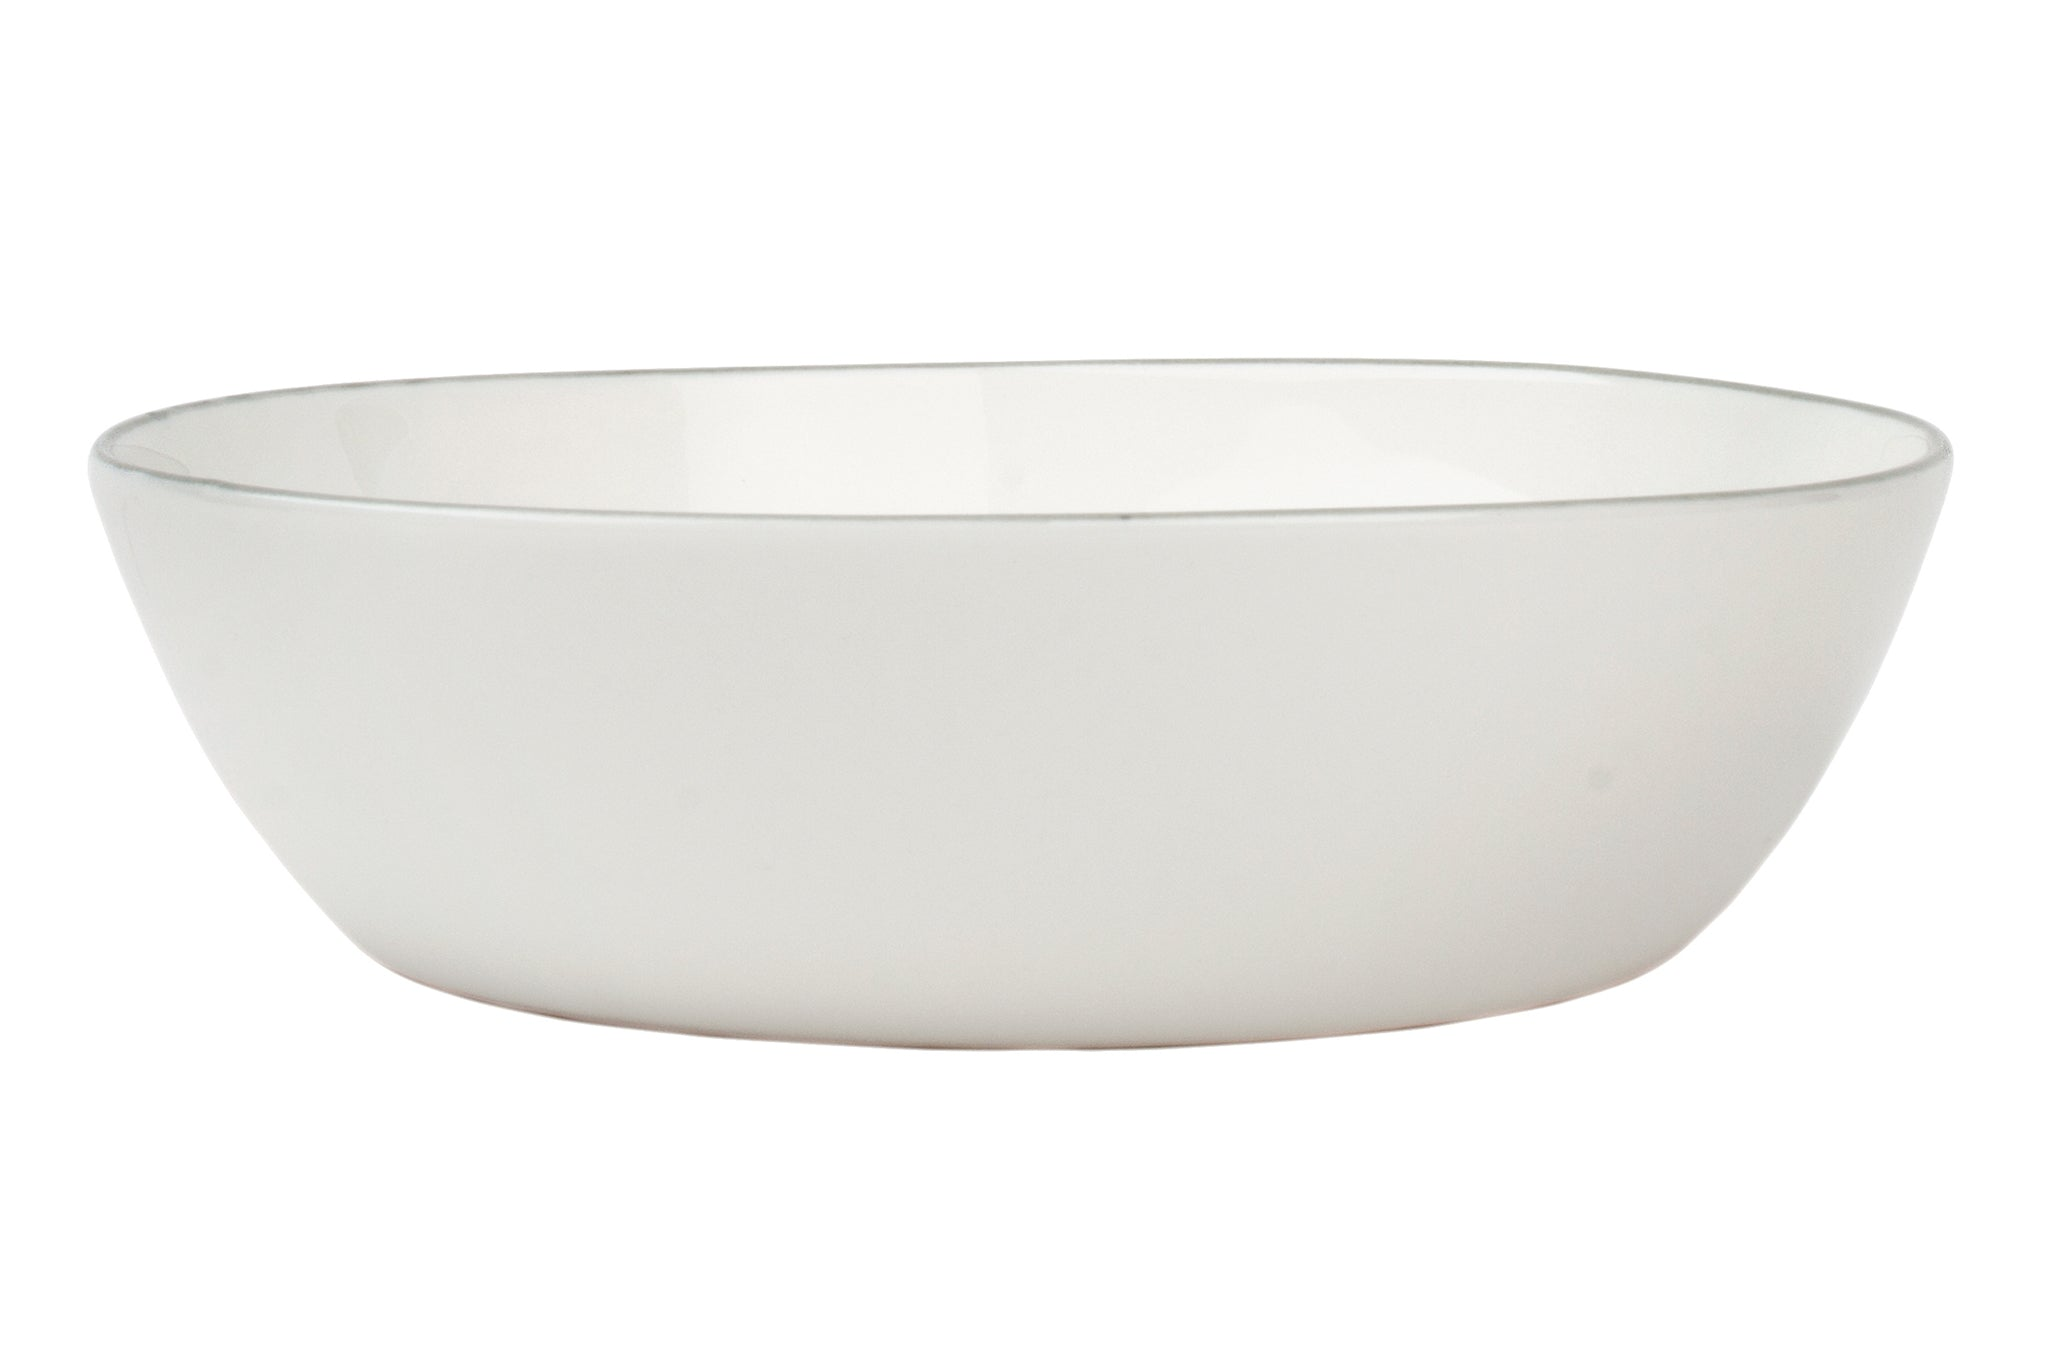 Abbesses Pasta Bowl Grey Rim (Set of 4)